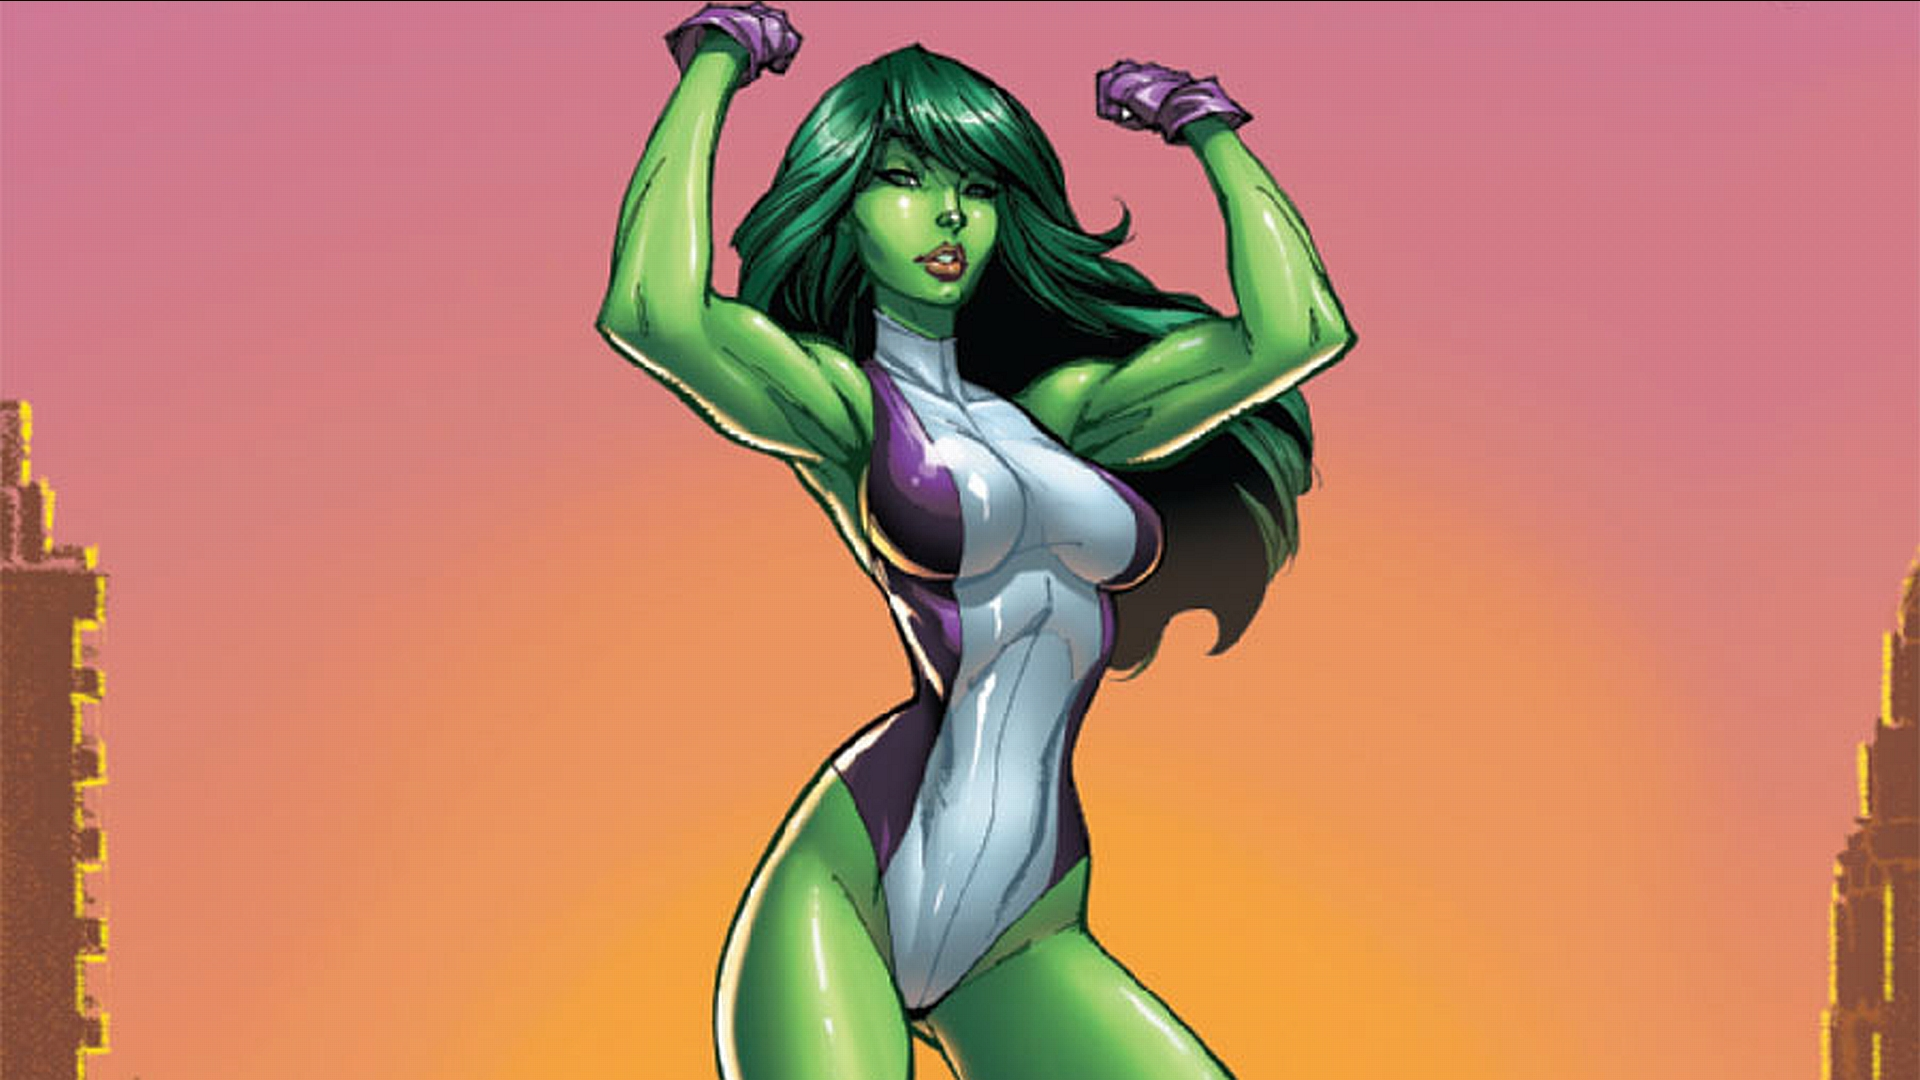 Let's talk about She-Hulk